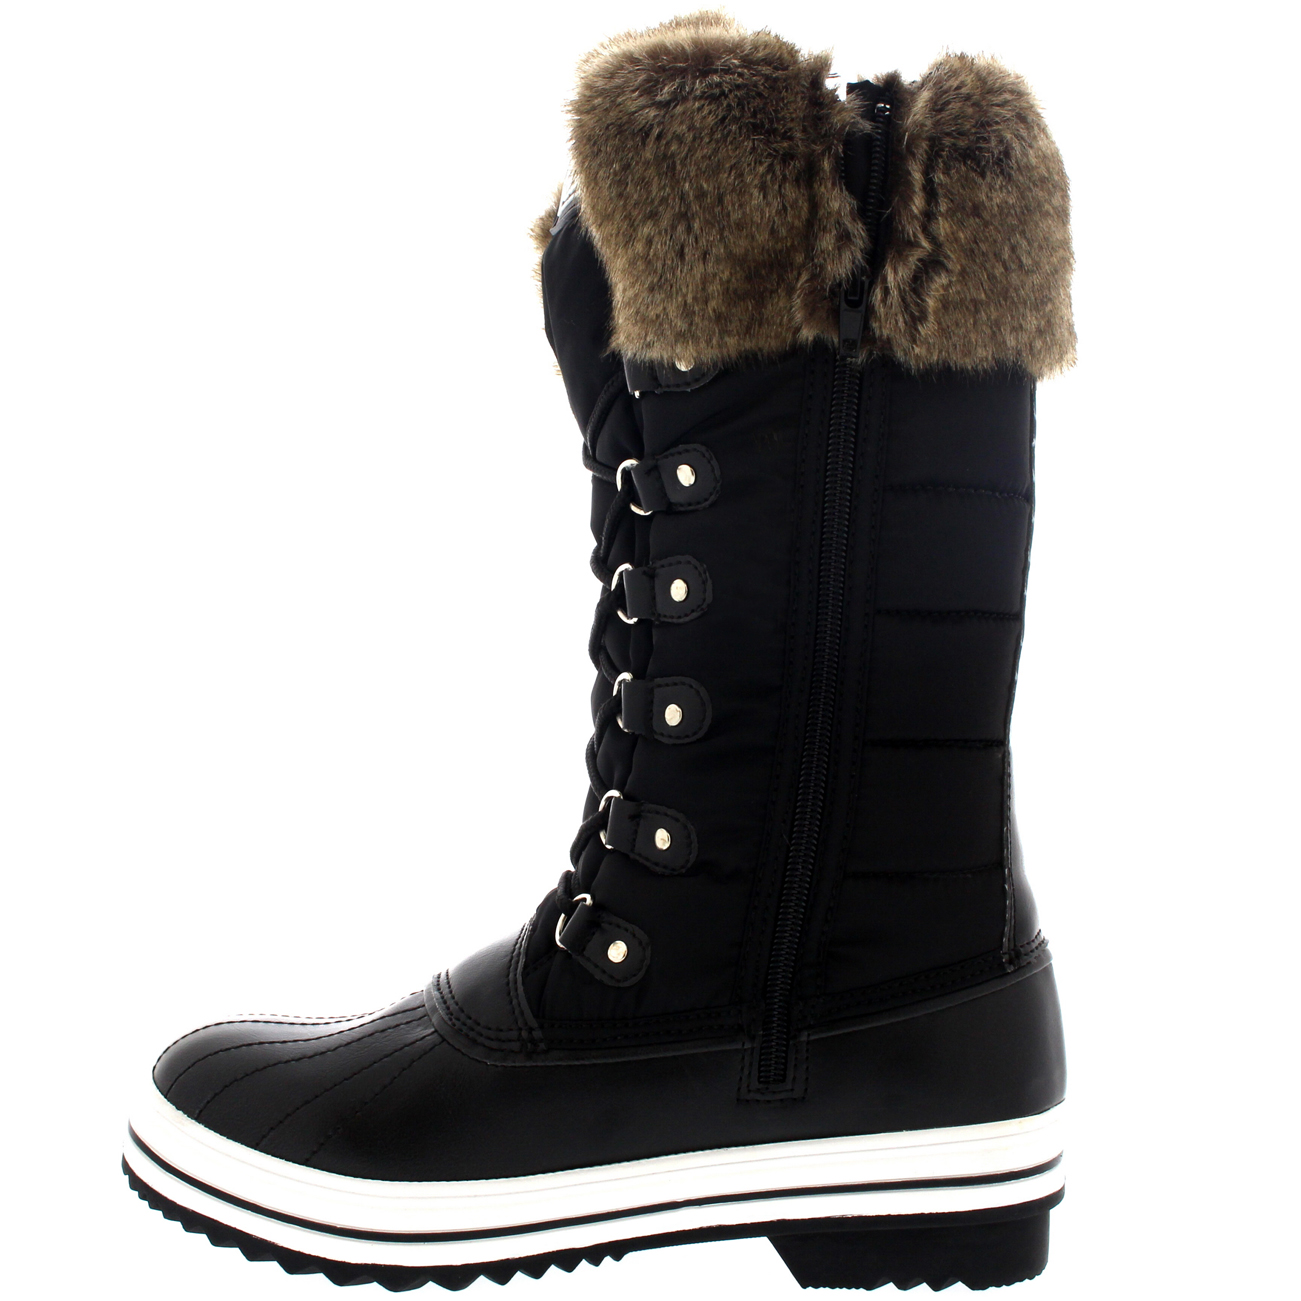 Womens Nylon Warm Side Zip Duck Muck Lace Up Rain Winter Snow Boots